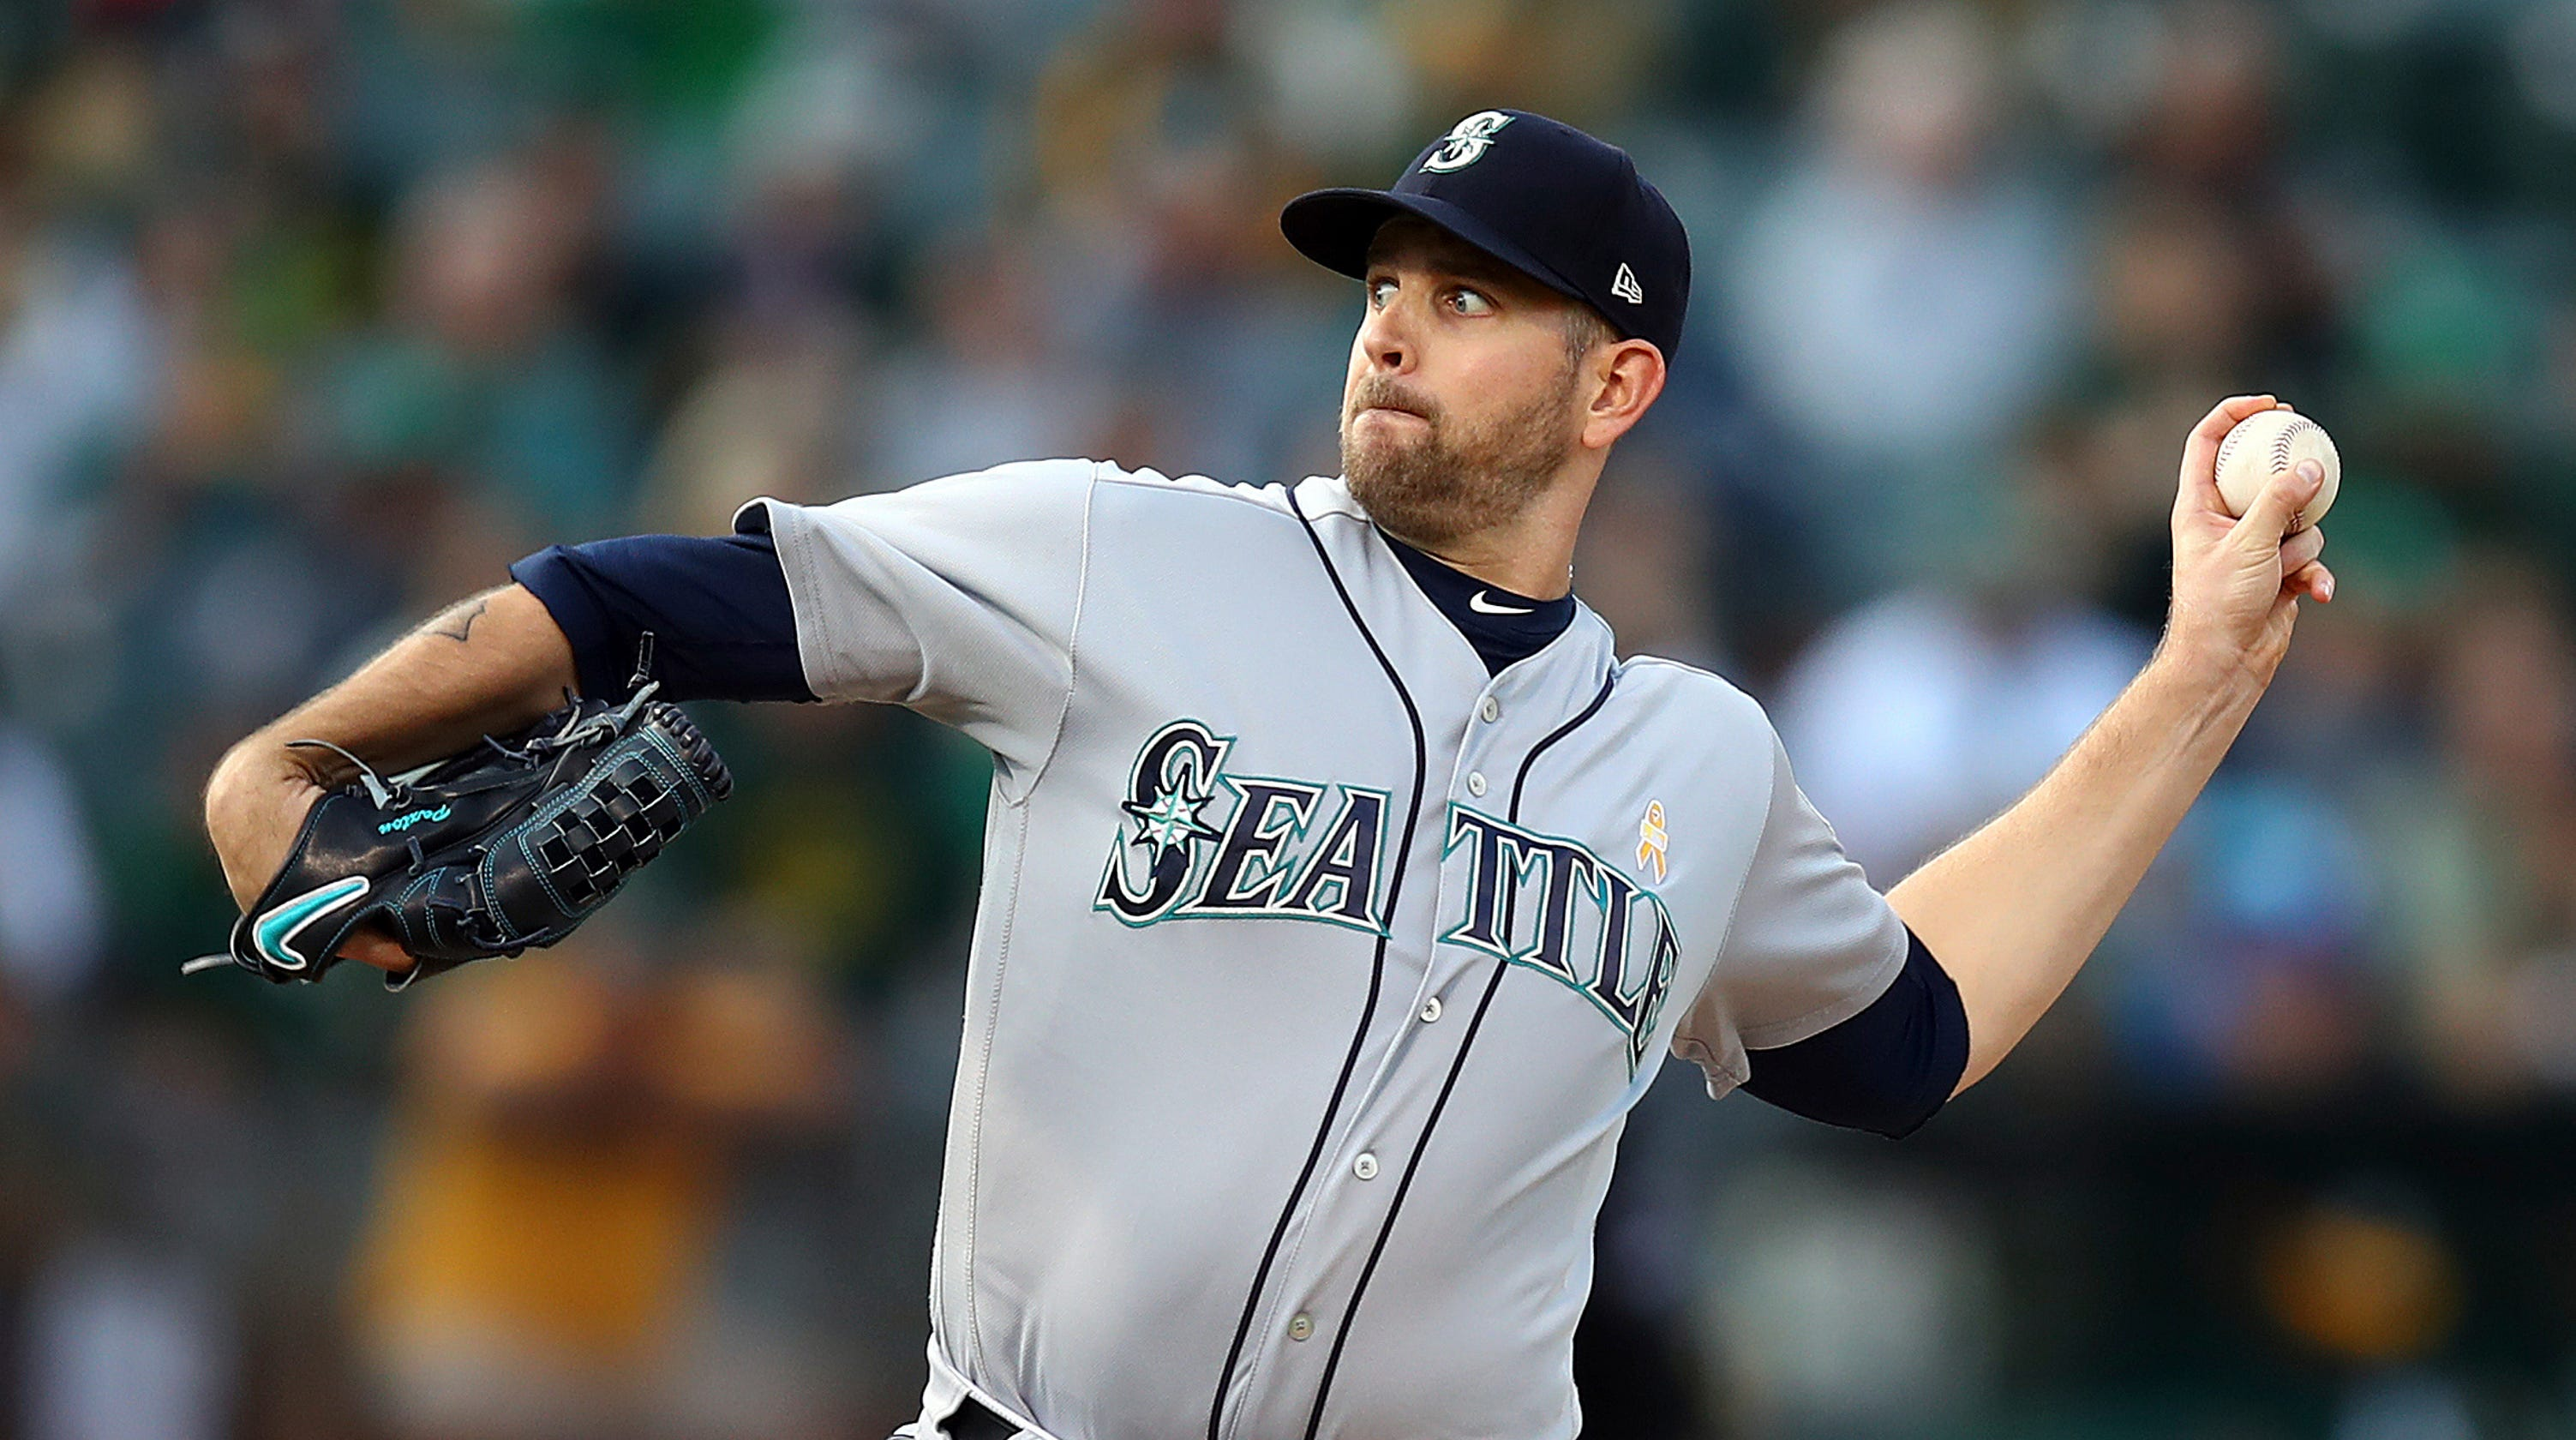 New York Yankees trade for pitcher James Paxton in deal including Justus  Sheffield 4964225b0f